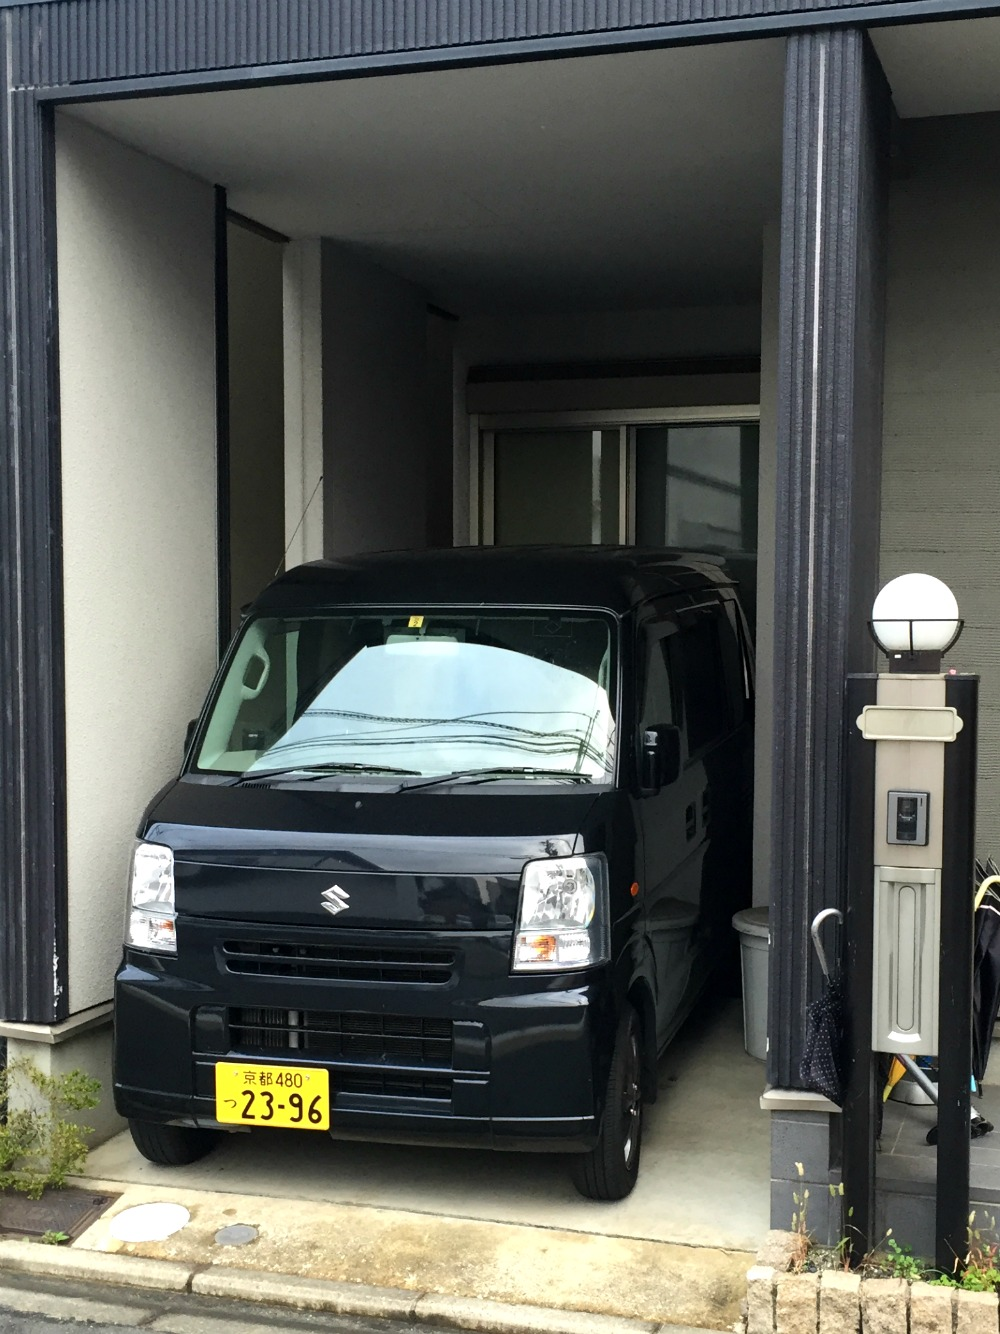 Sometimes we were wondering about the tiny parking spots in Japan. I´m so glad I didn´t have to try backing up a car over here!